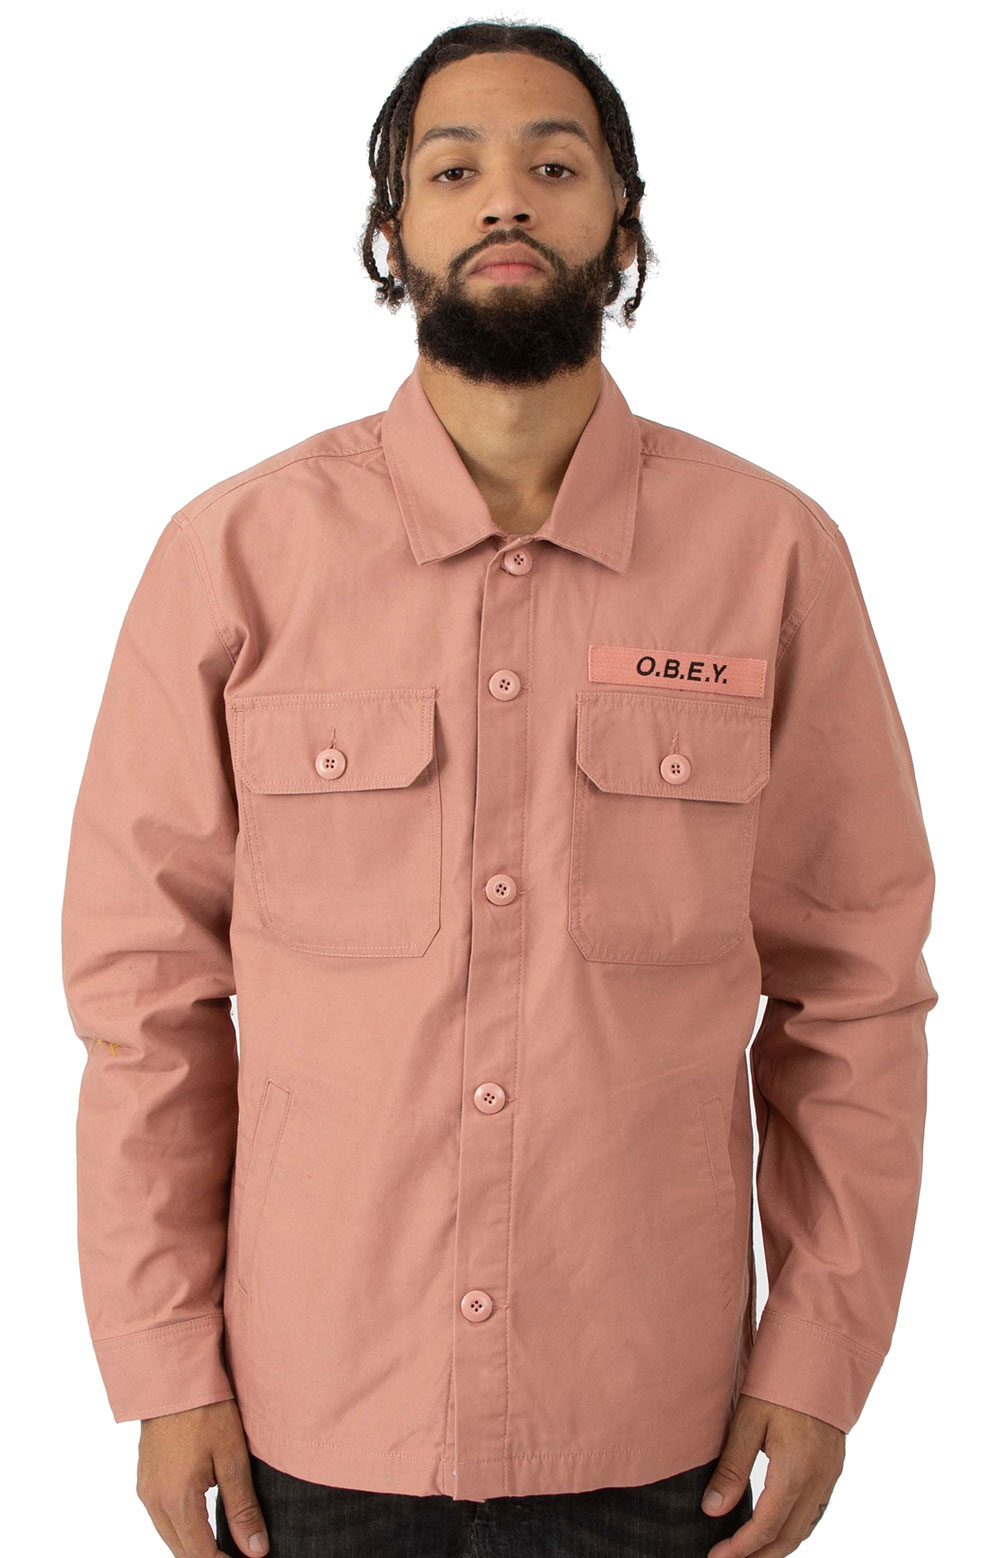 Station Shirt Jacket - Rose